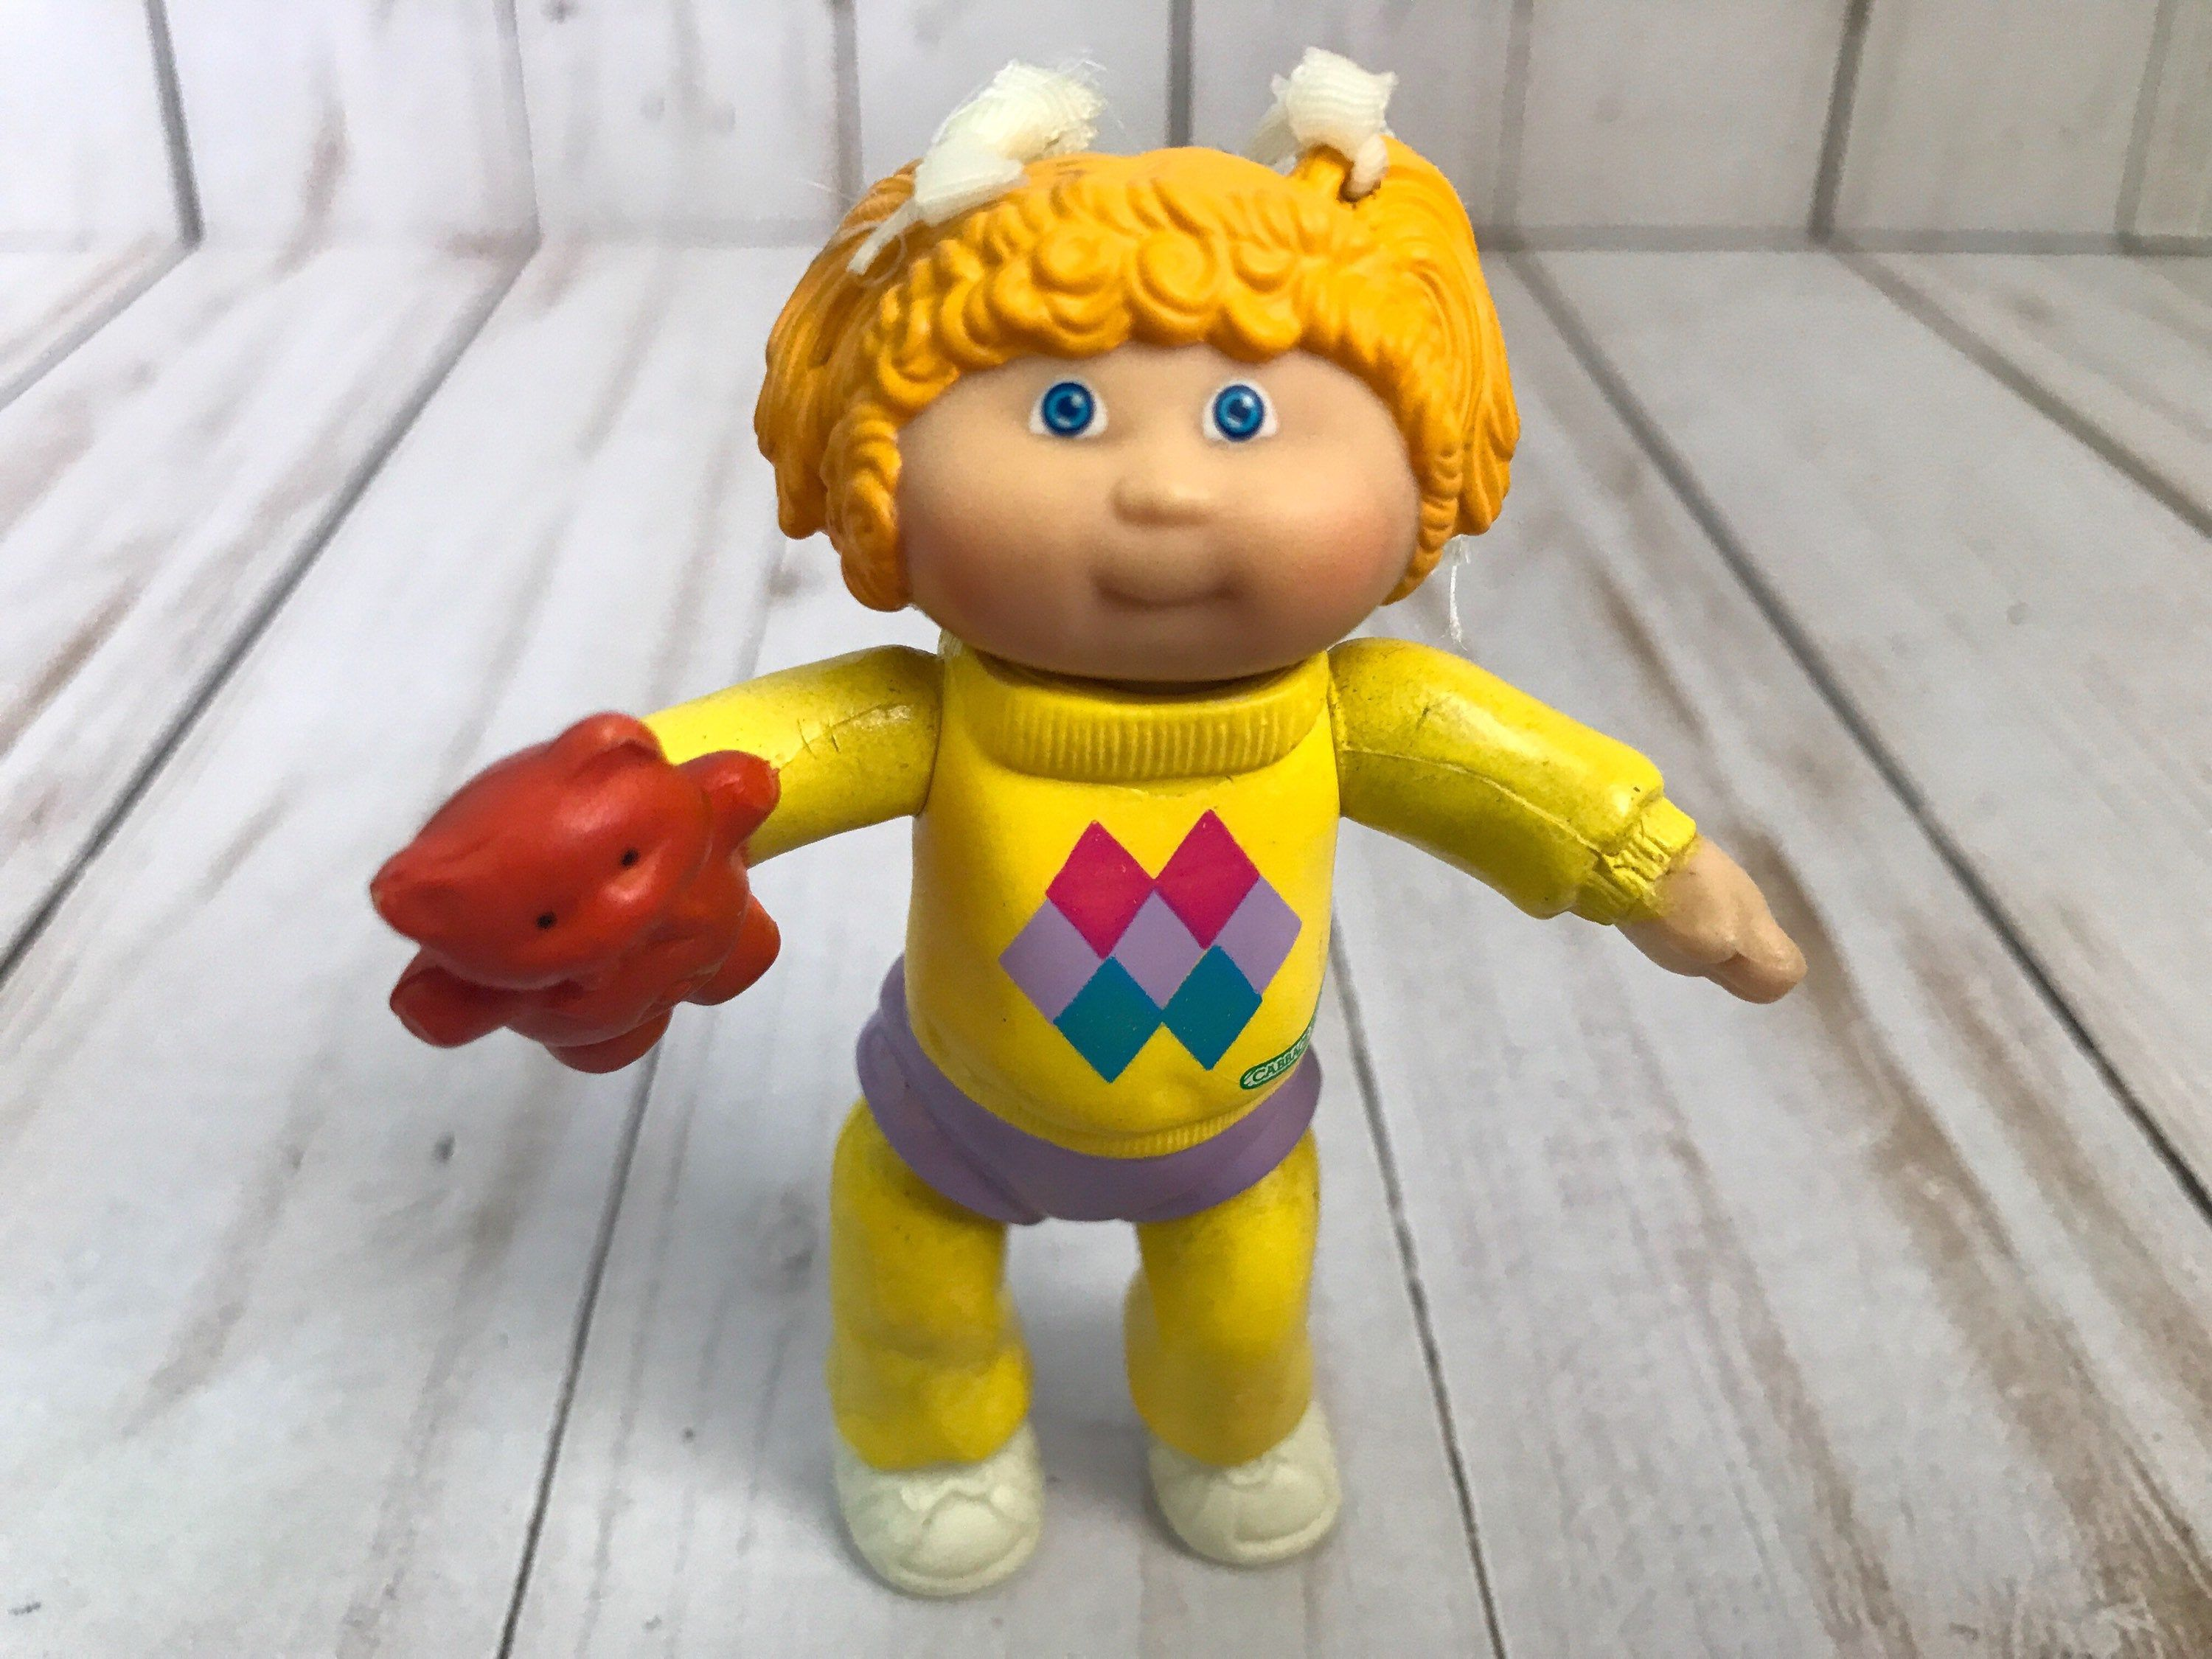 Pin By Vintage Toys Kid S Books Fro On Cabbage Patch Kids In 2021 Cabbage Patch Kids Cabbage Patch Dolls Original Dolls